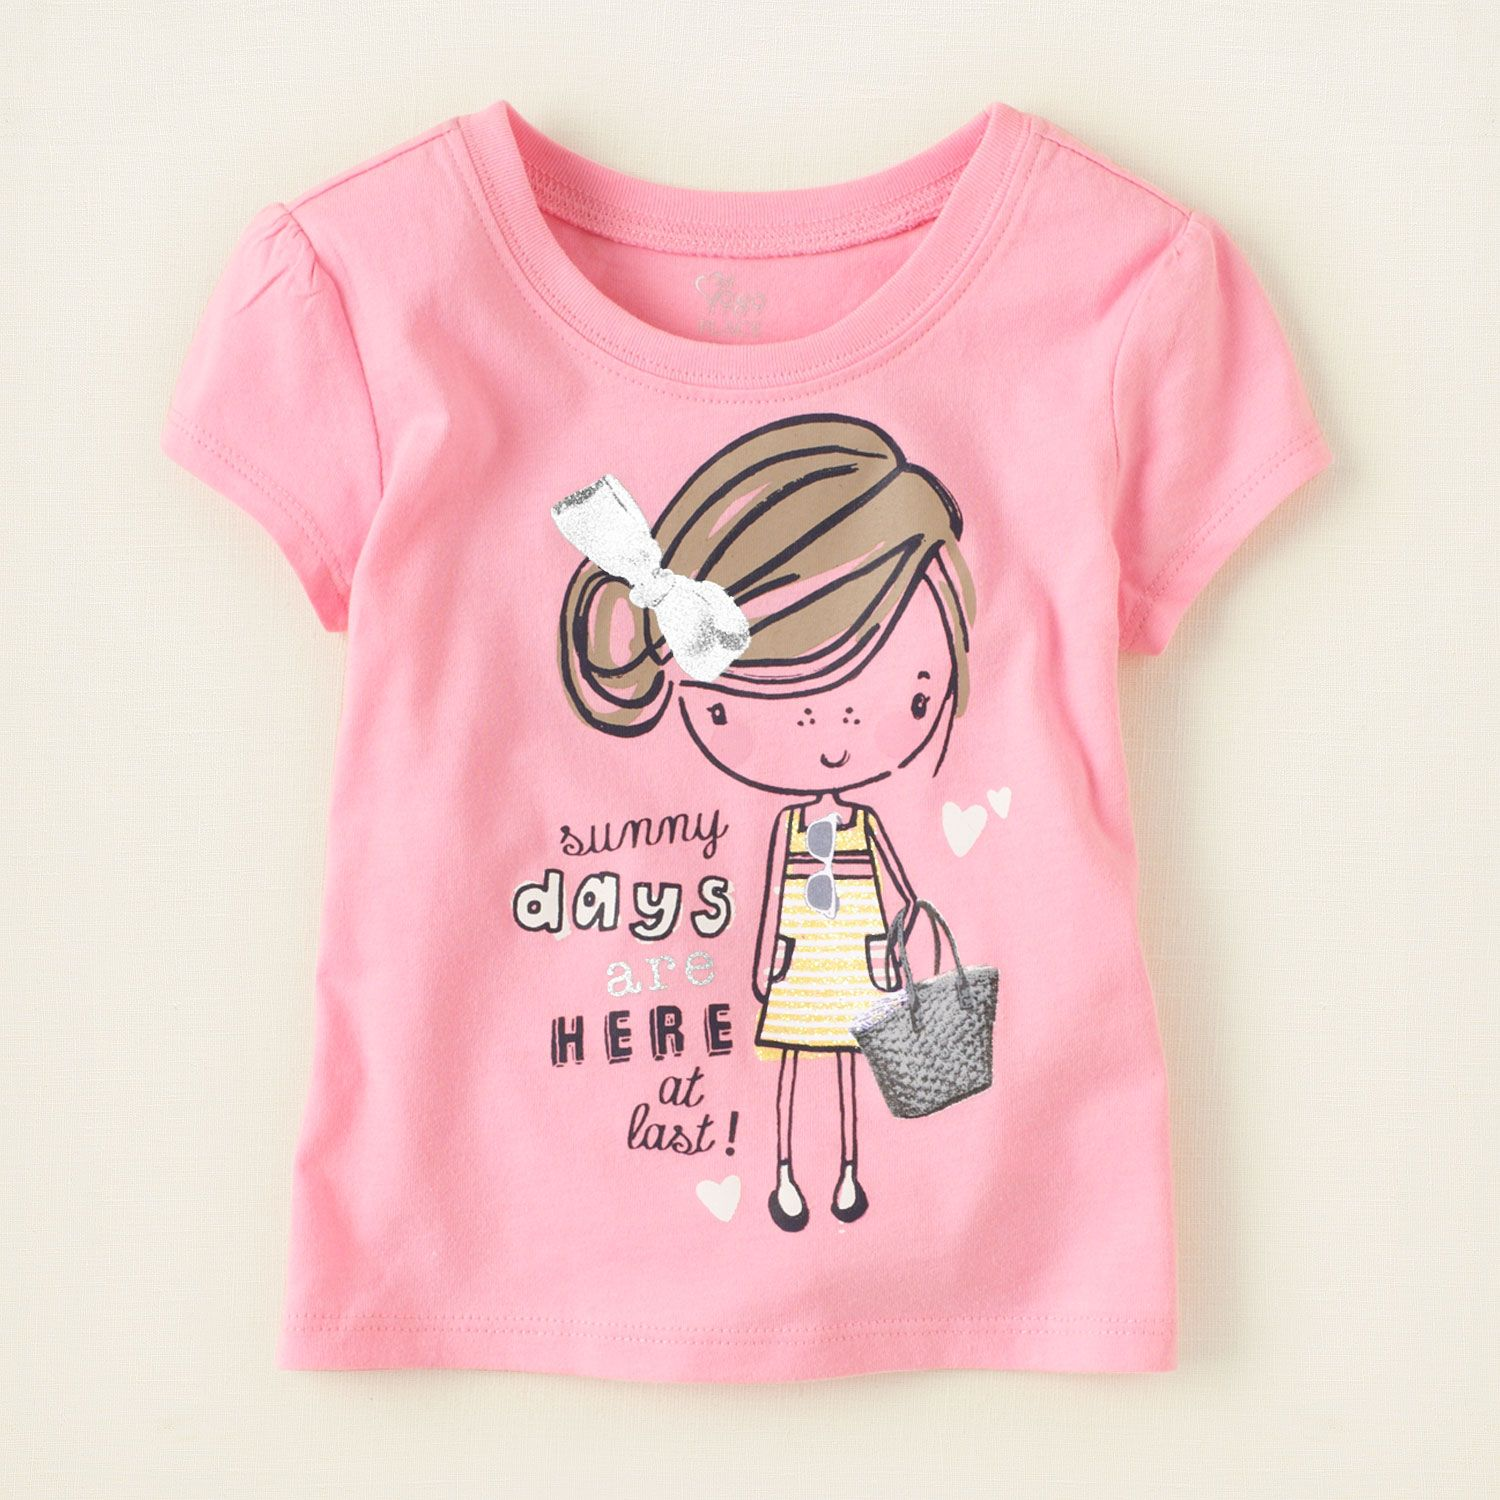 New The Children/'s Place Girls Newborn to Toddler Tops /& Shirts